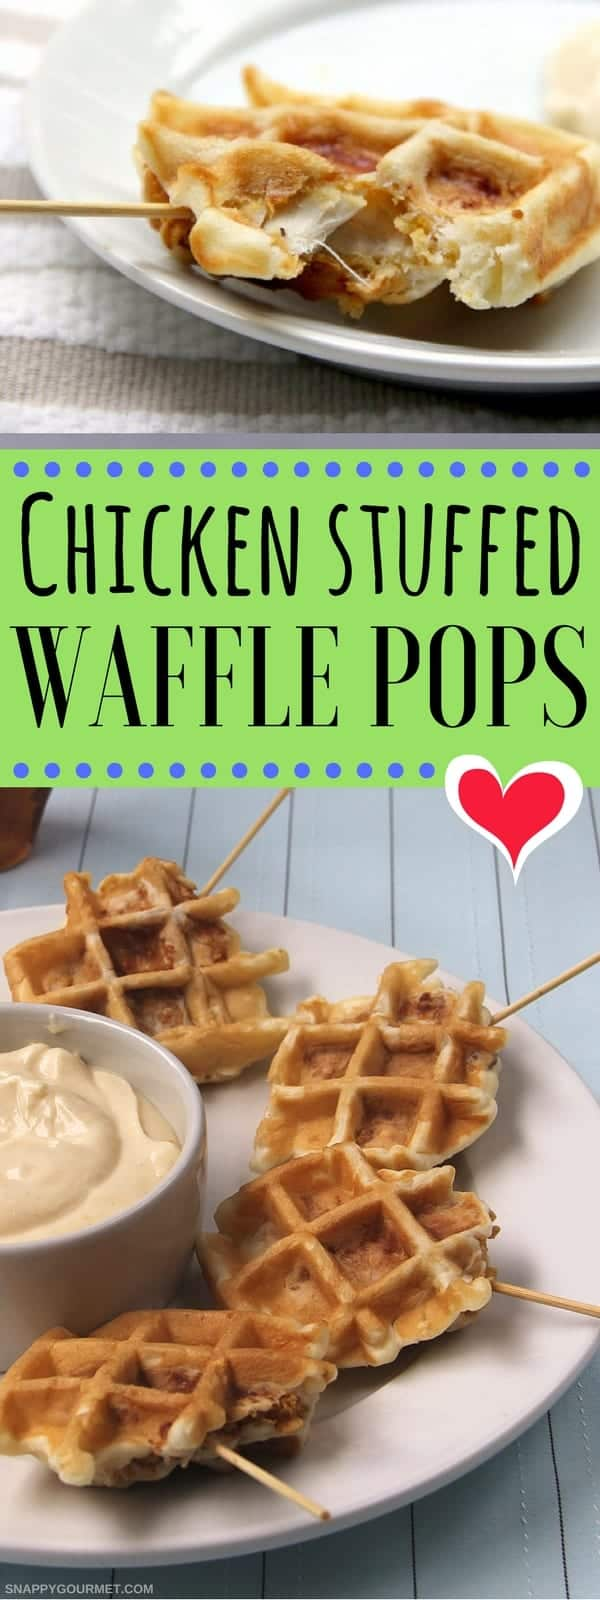 Chicken Stuffed Waffle Pops Recipe - easy chicken and waffles appetizer with homemade baked chicken nuggets in Bisquick waffle batter.